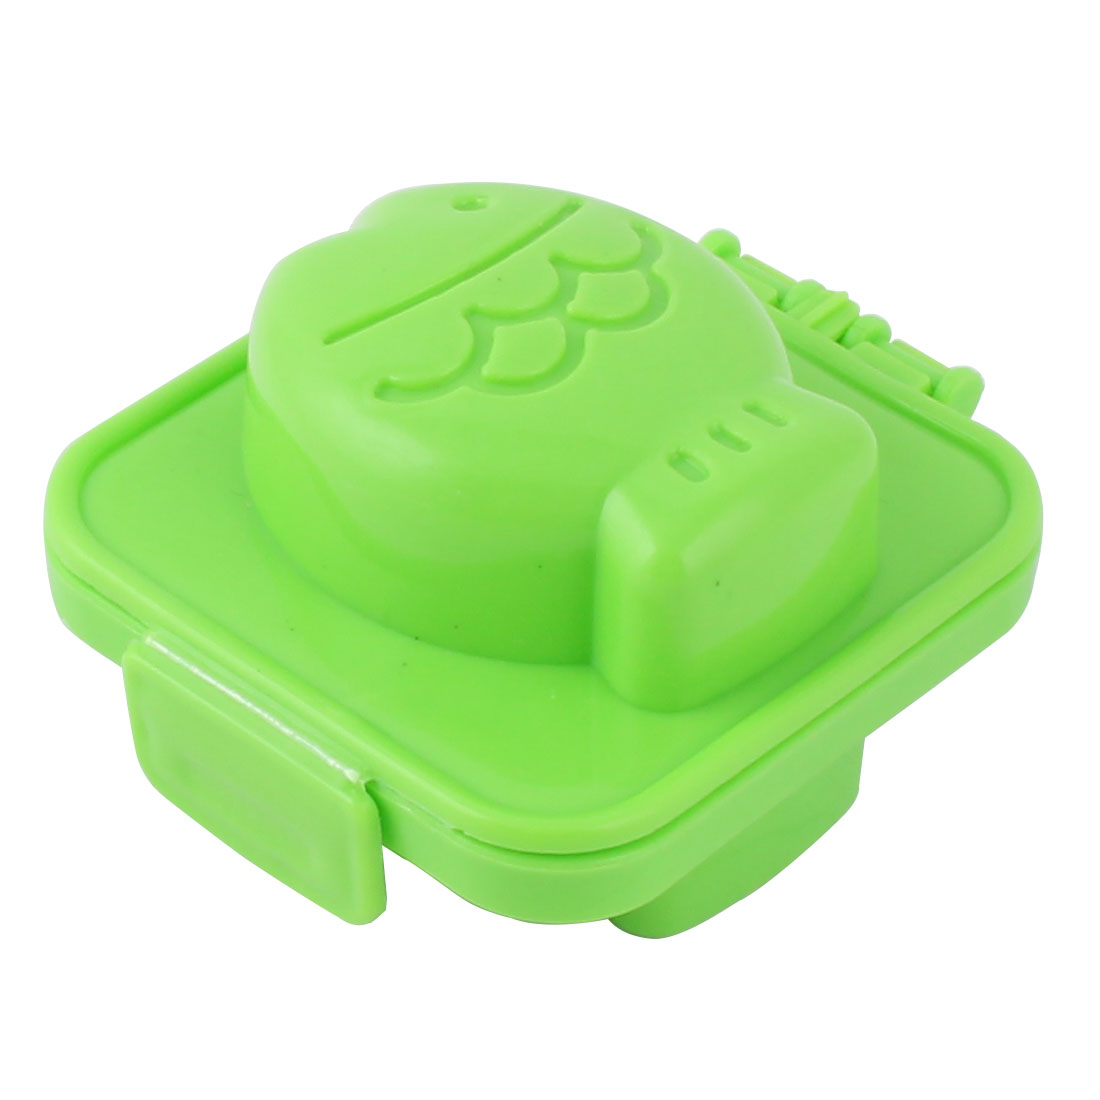 Home Bakery Kitchen Plastic Fish Shaped Sandwich Sushi Rice Mold Bread Maker Green